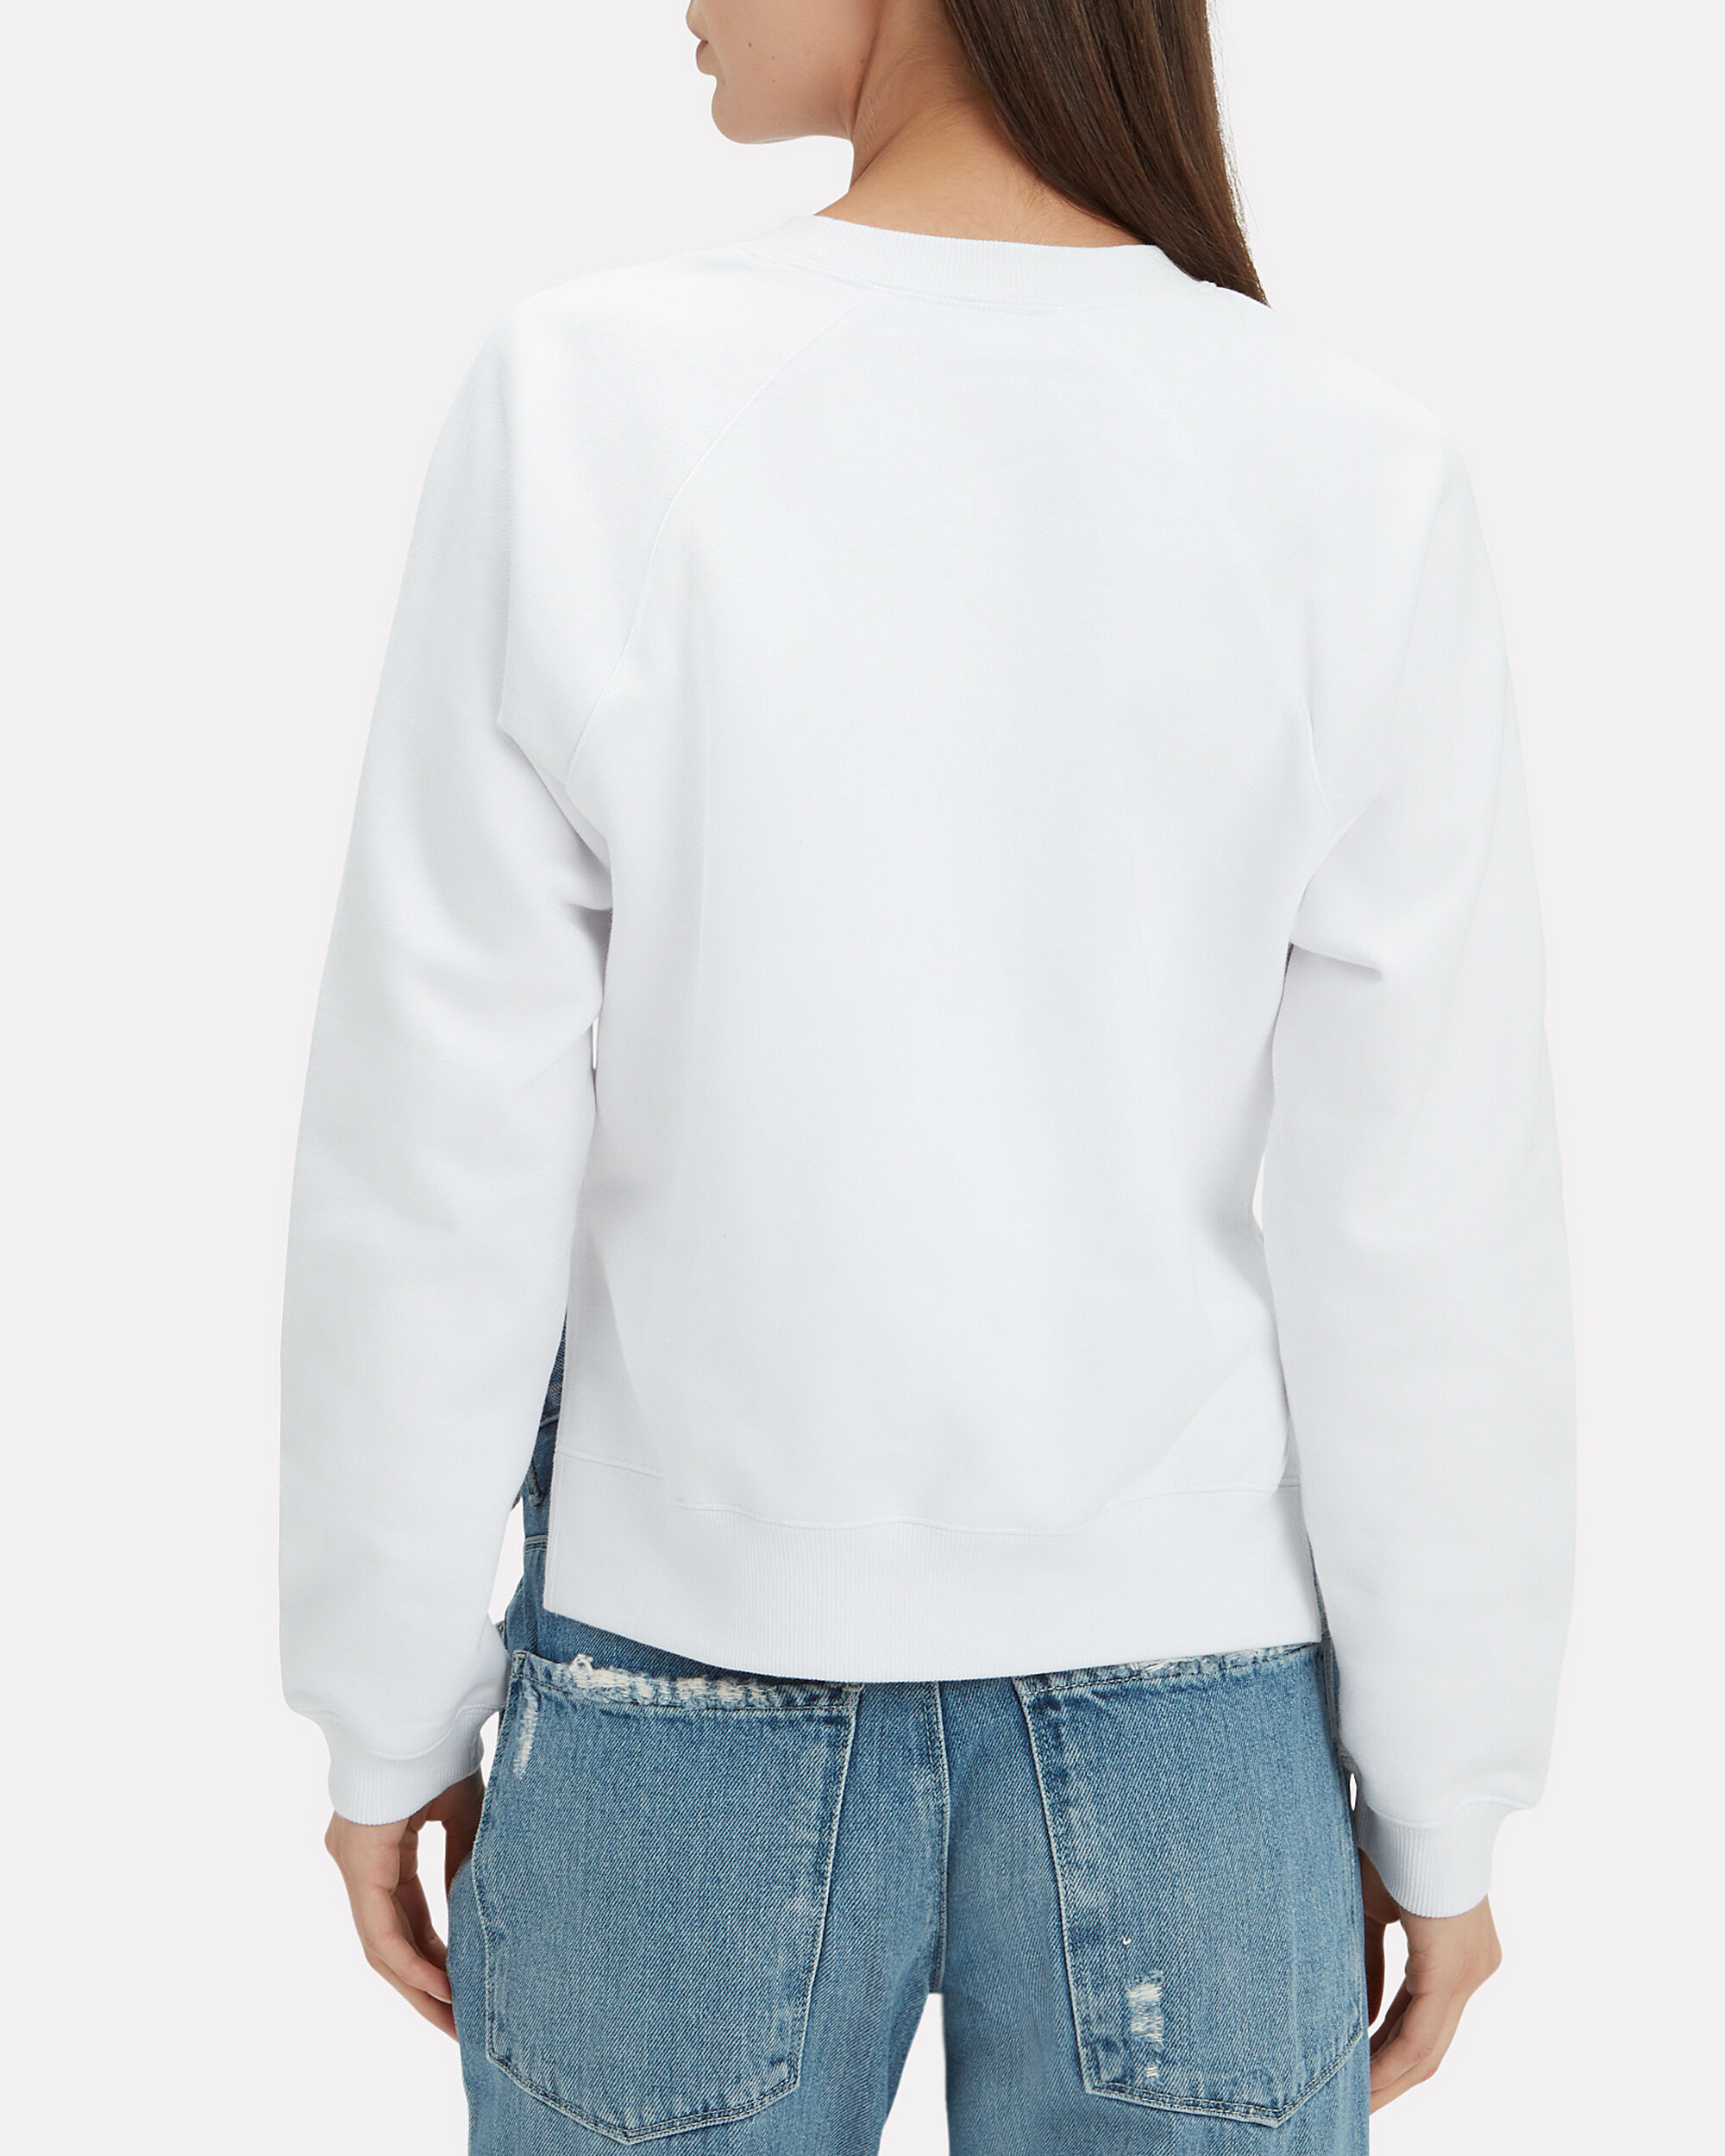 Shrunken White Sweatshirt, WHITE, hi-res